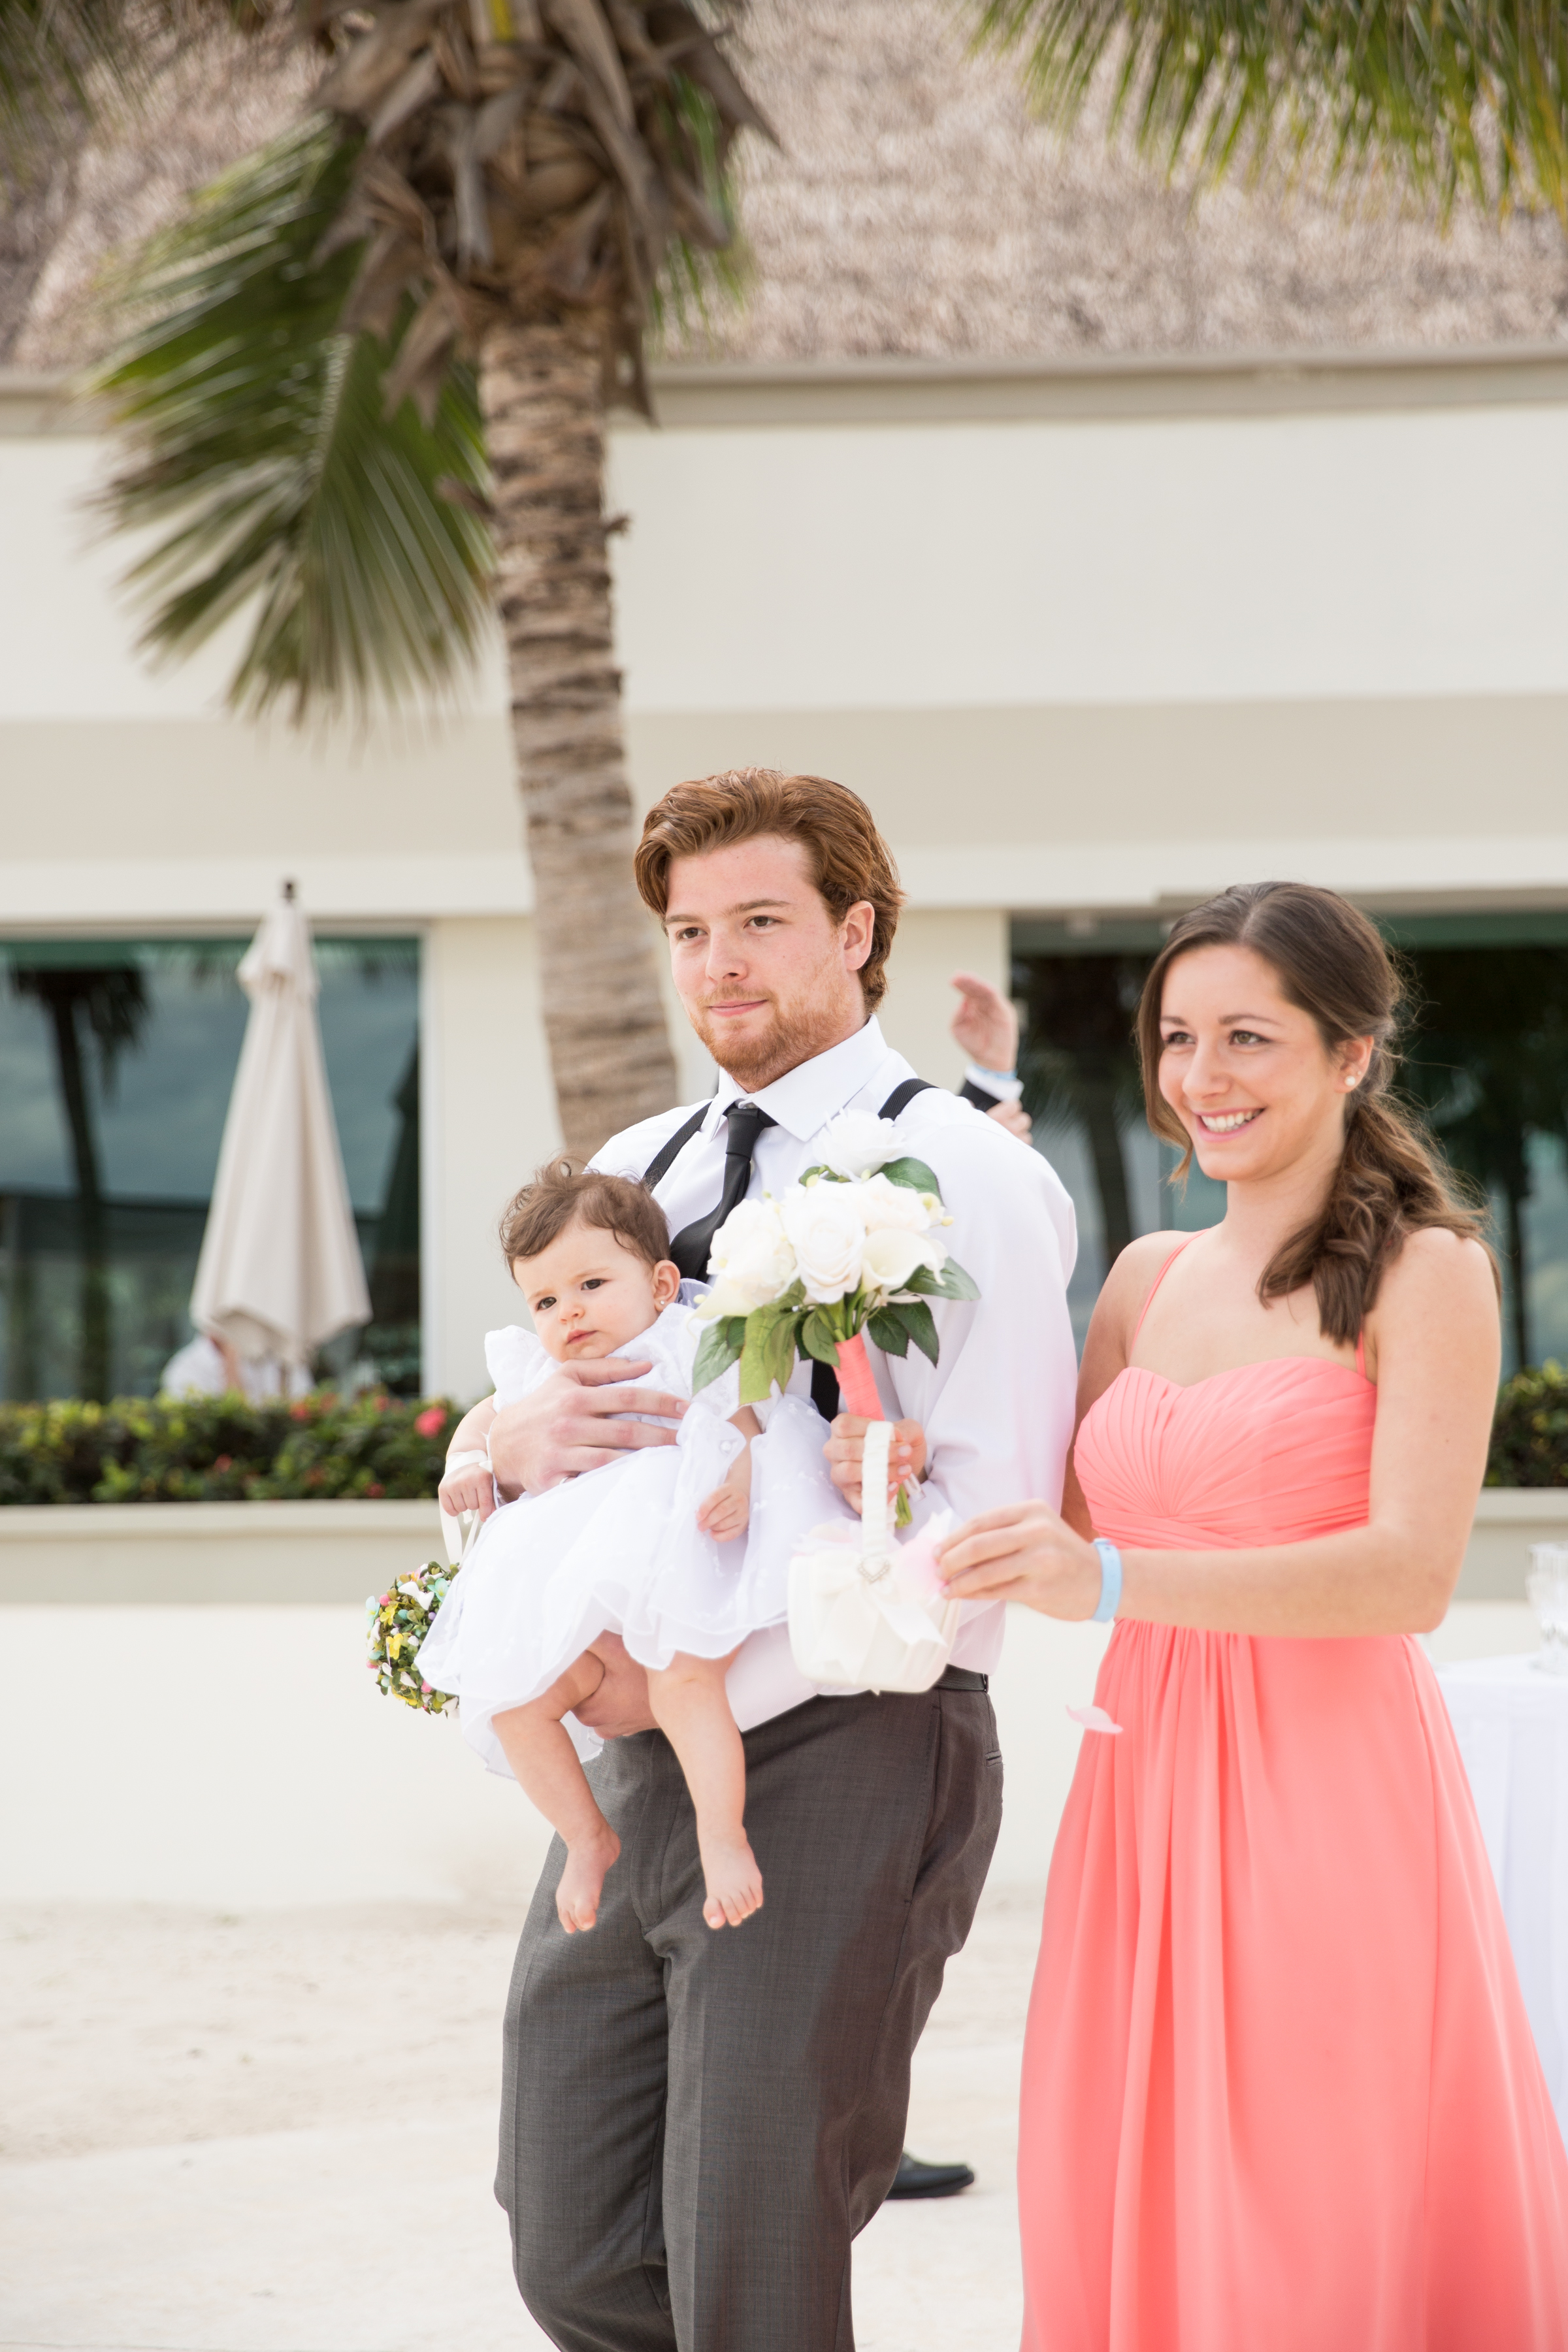 flower girl at beach wedding in mexico